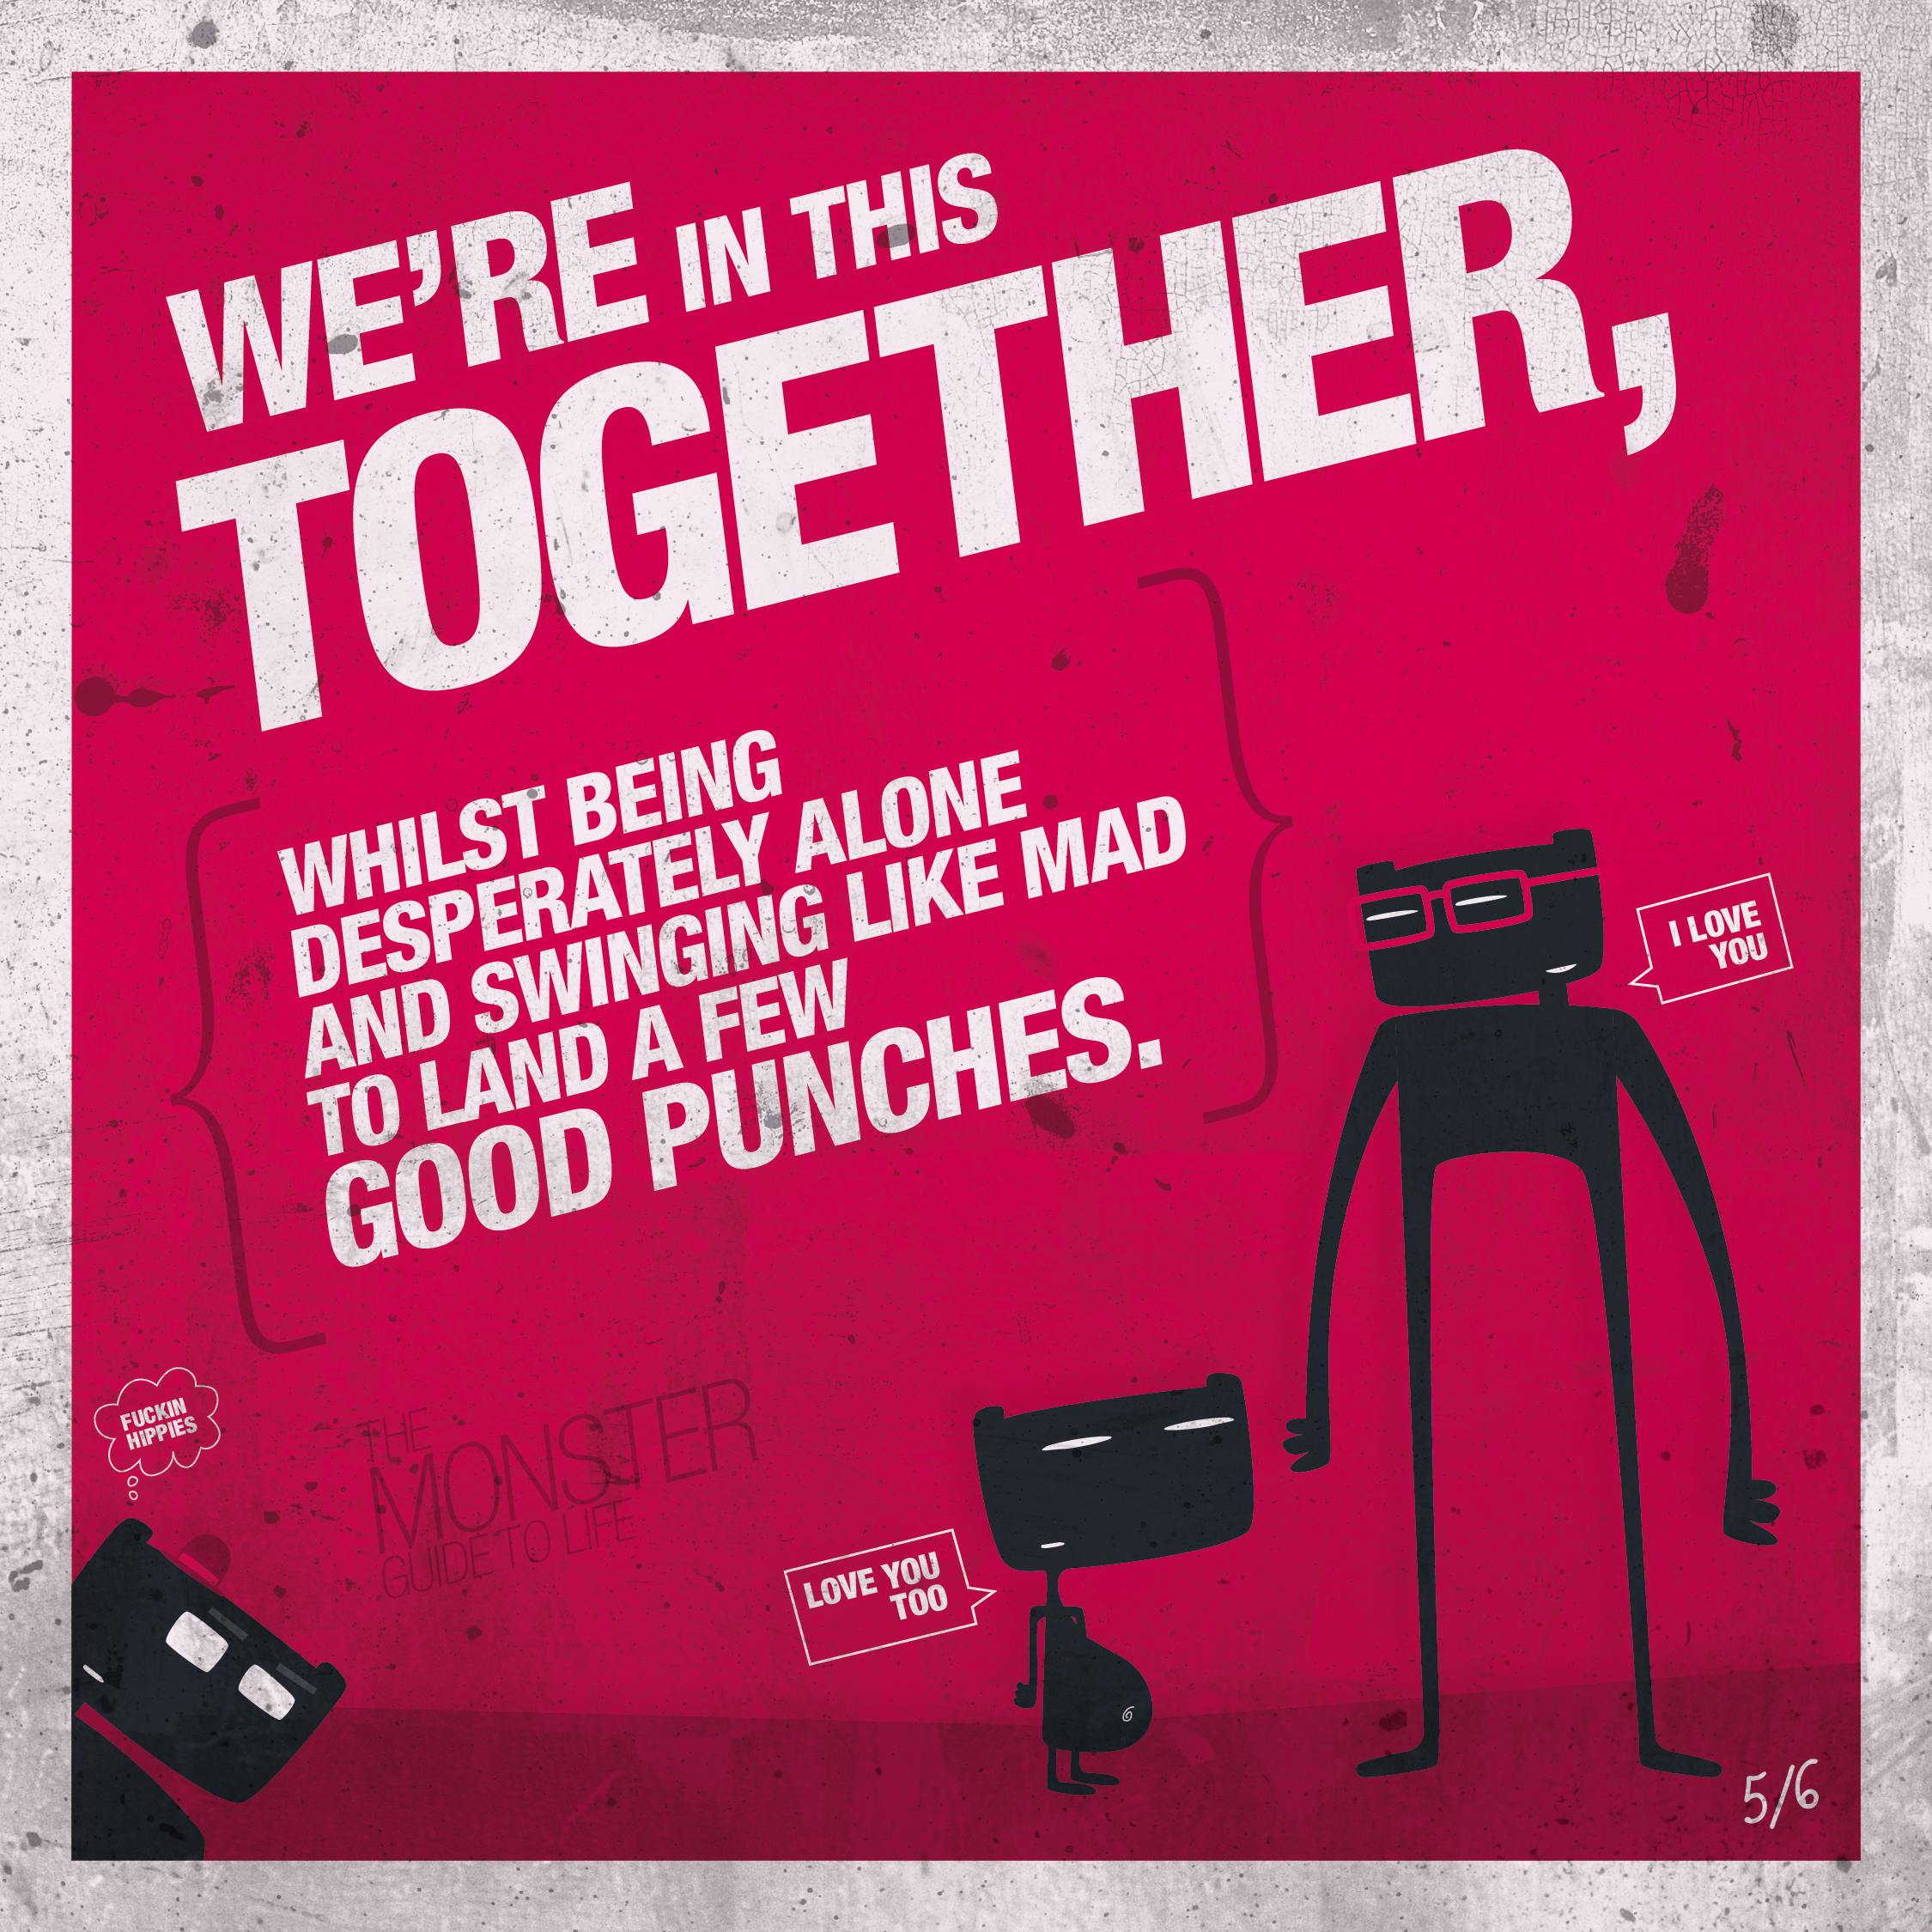 We're in this together, whilst being desperately alone and swinging like mad to land a few good punches